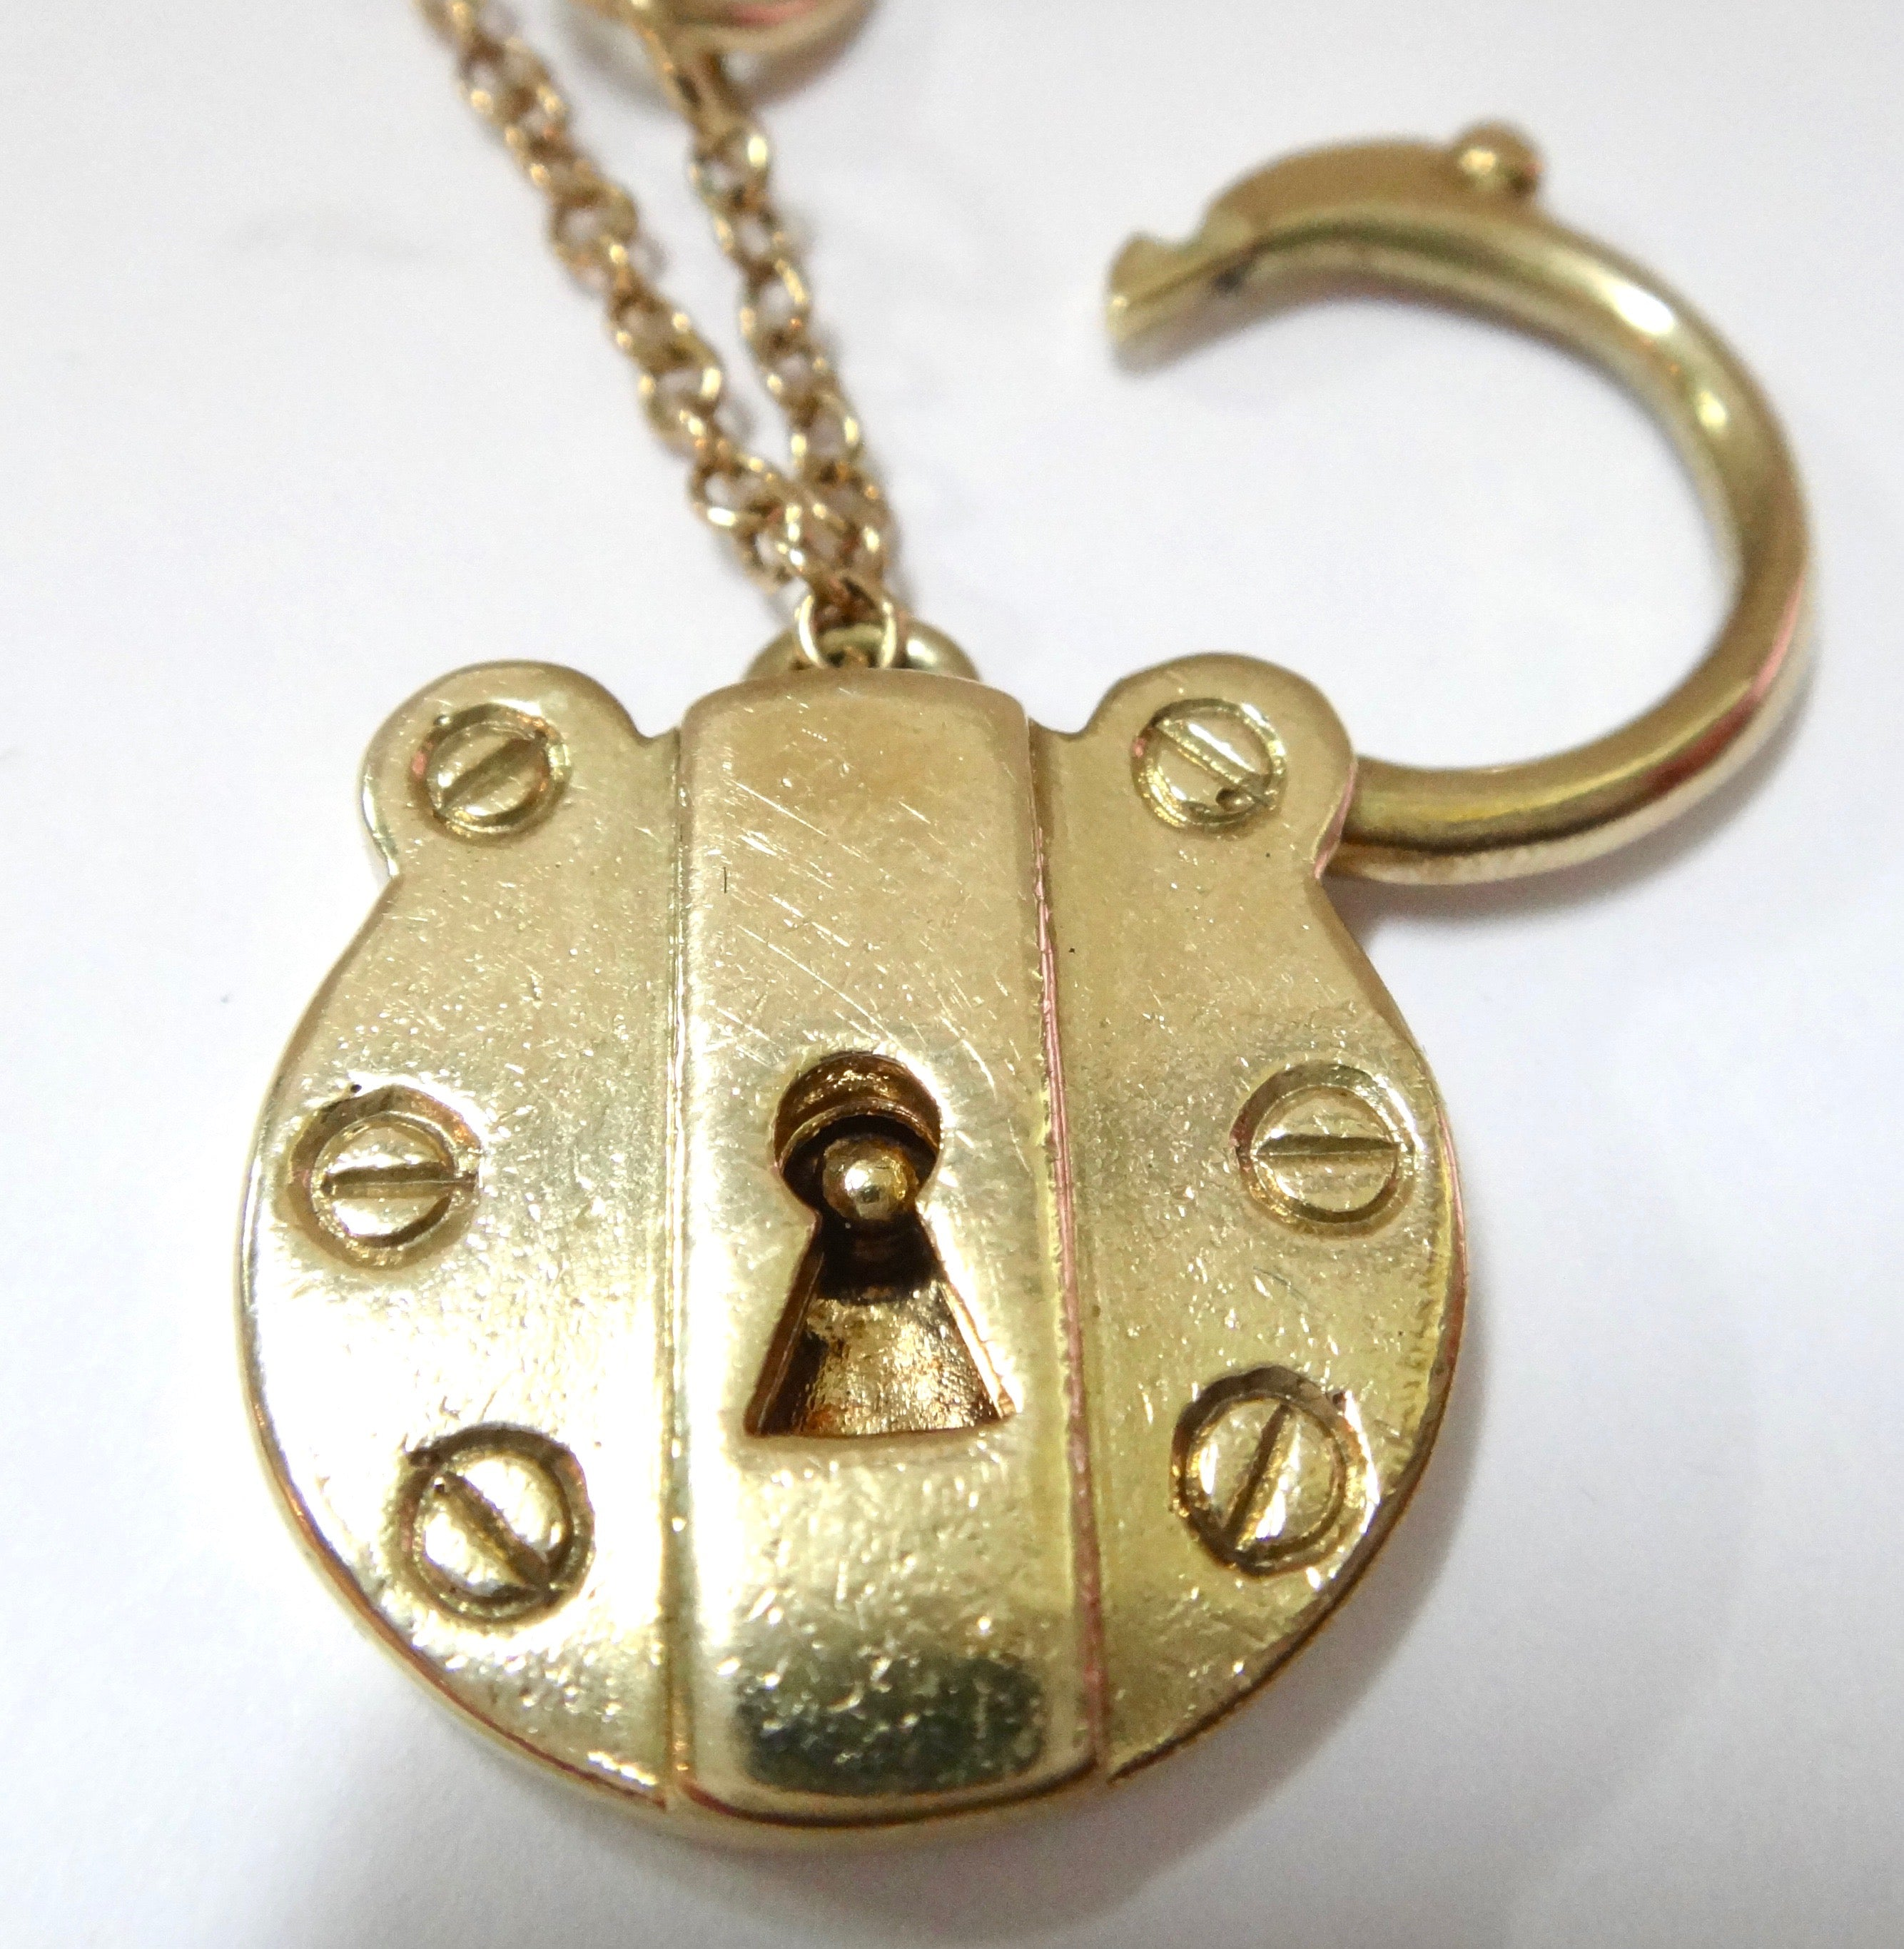 Heavy 9CT Gold Bracelet with Padlock Locket